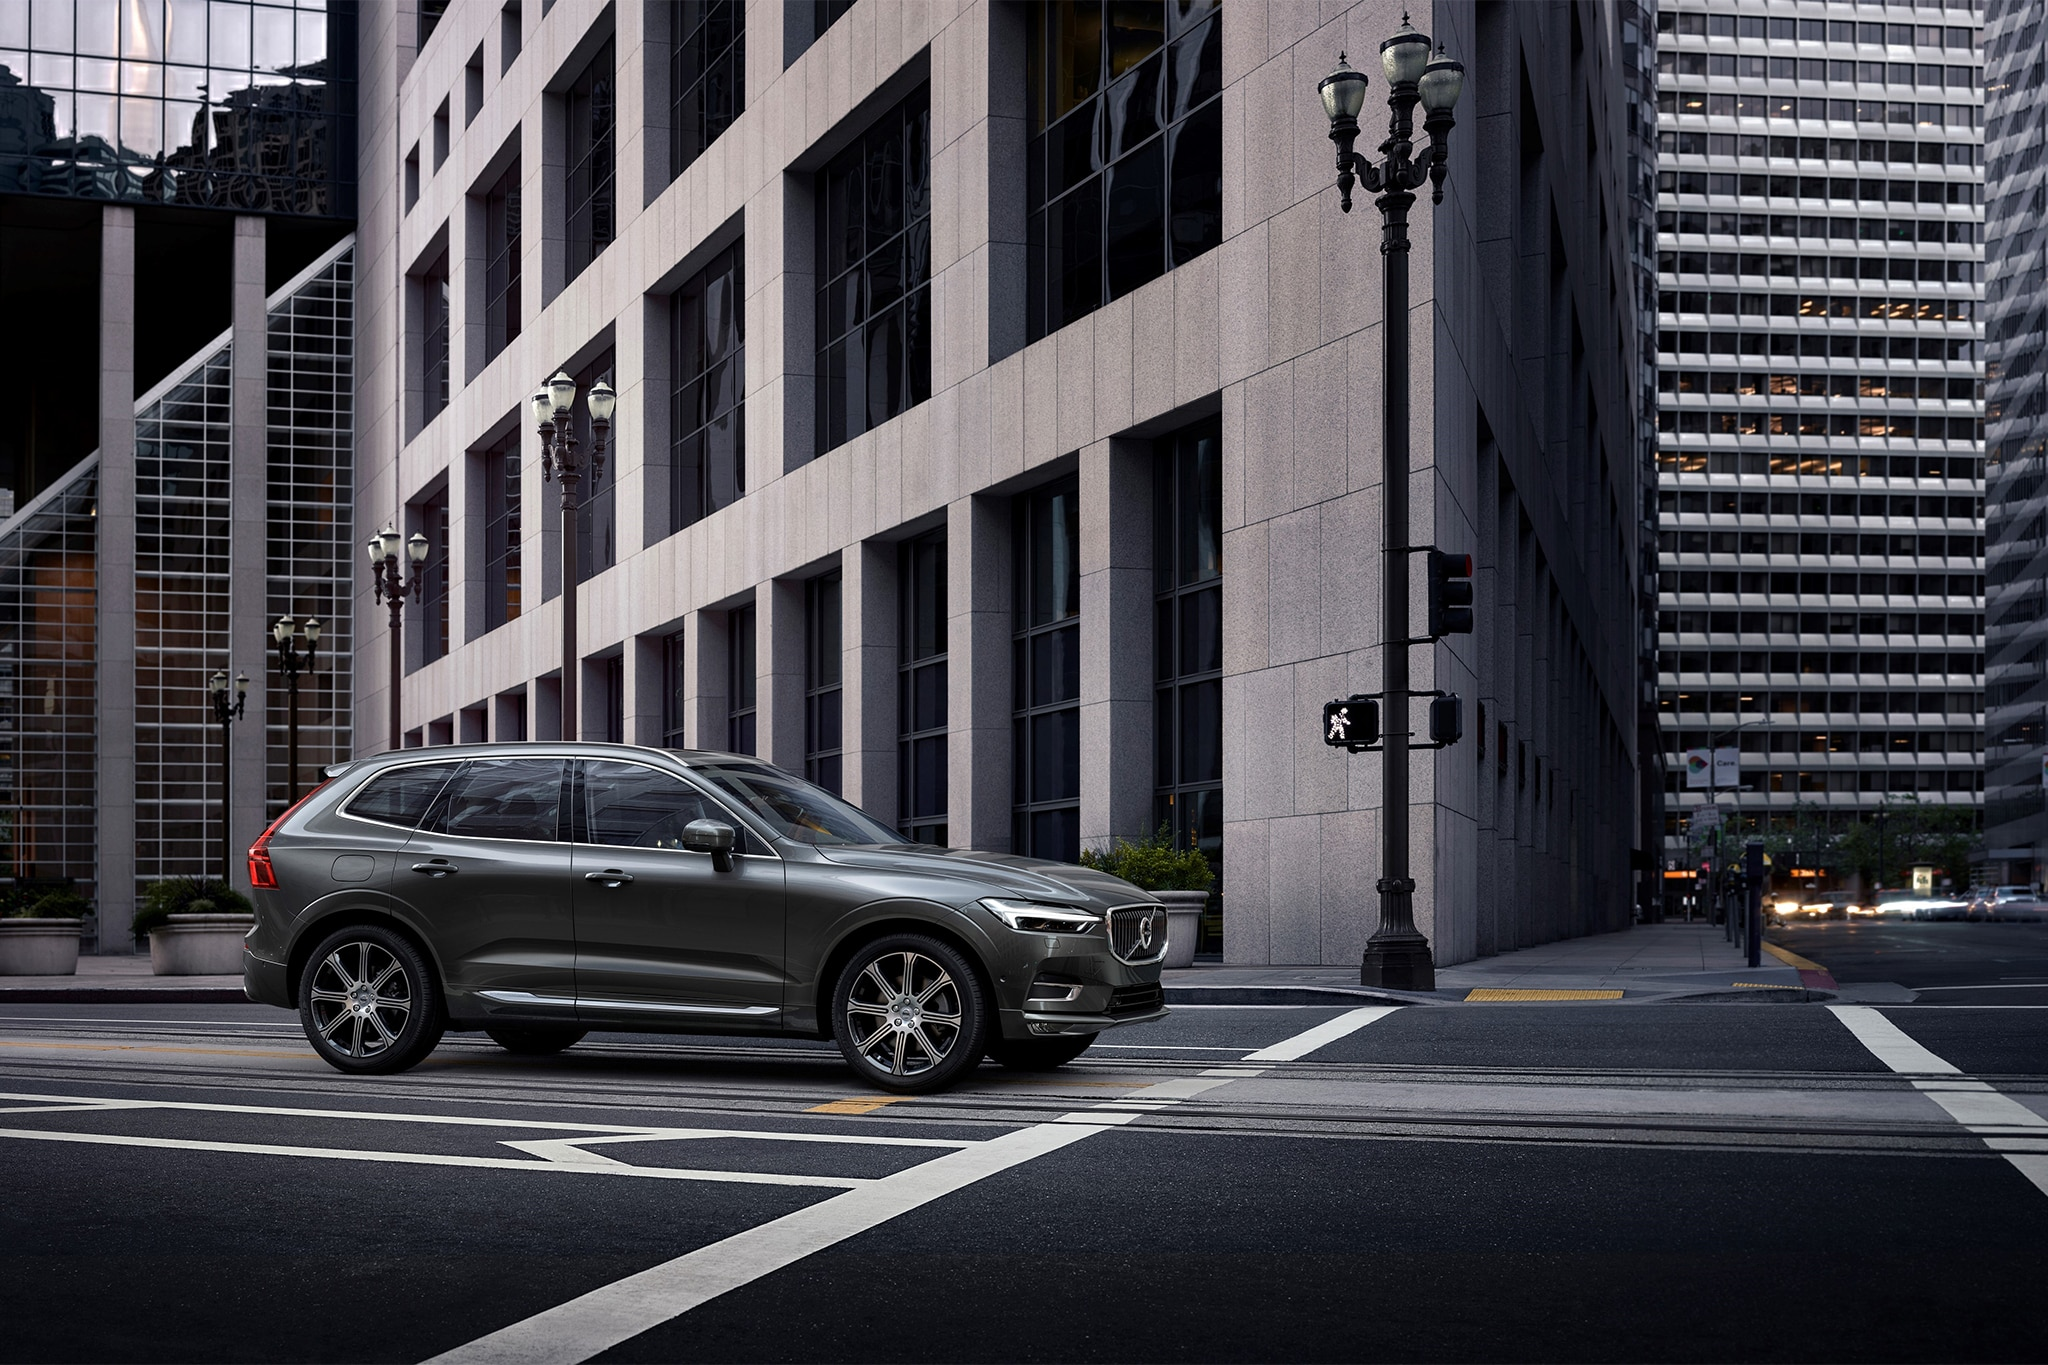 2018 volvo t6.  2018 Show More For 2018 Volvo T6 O